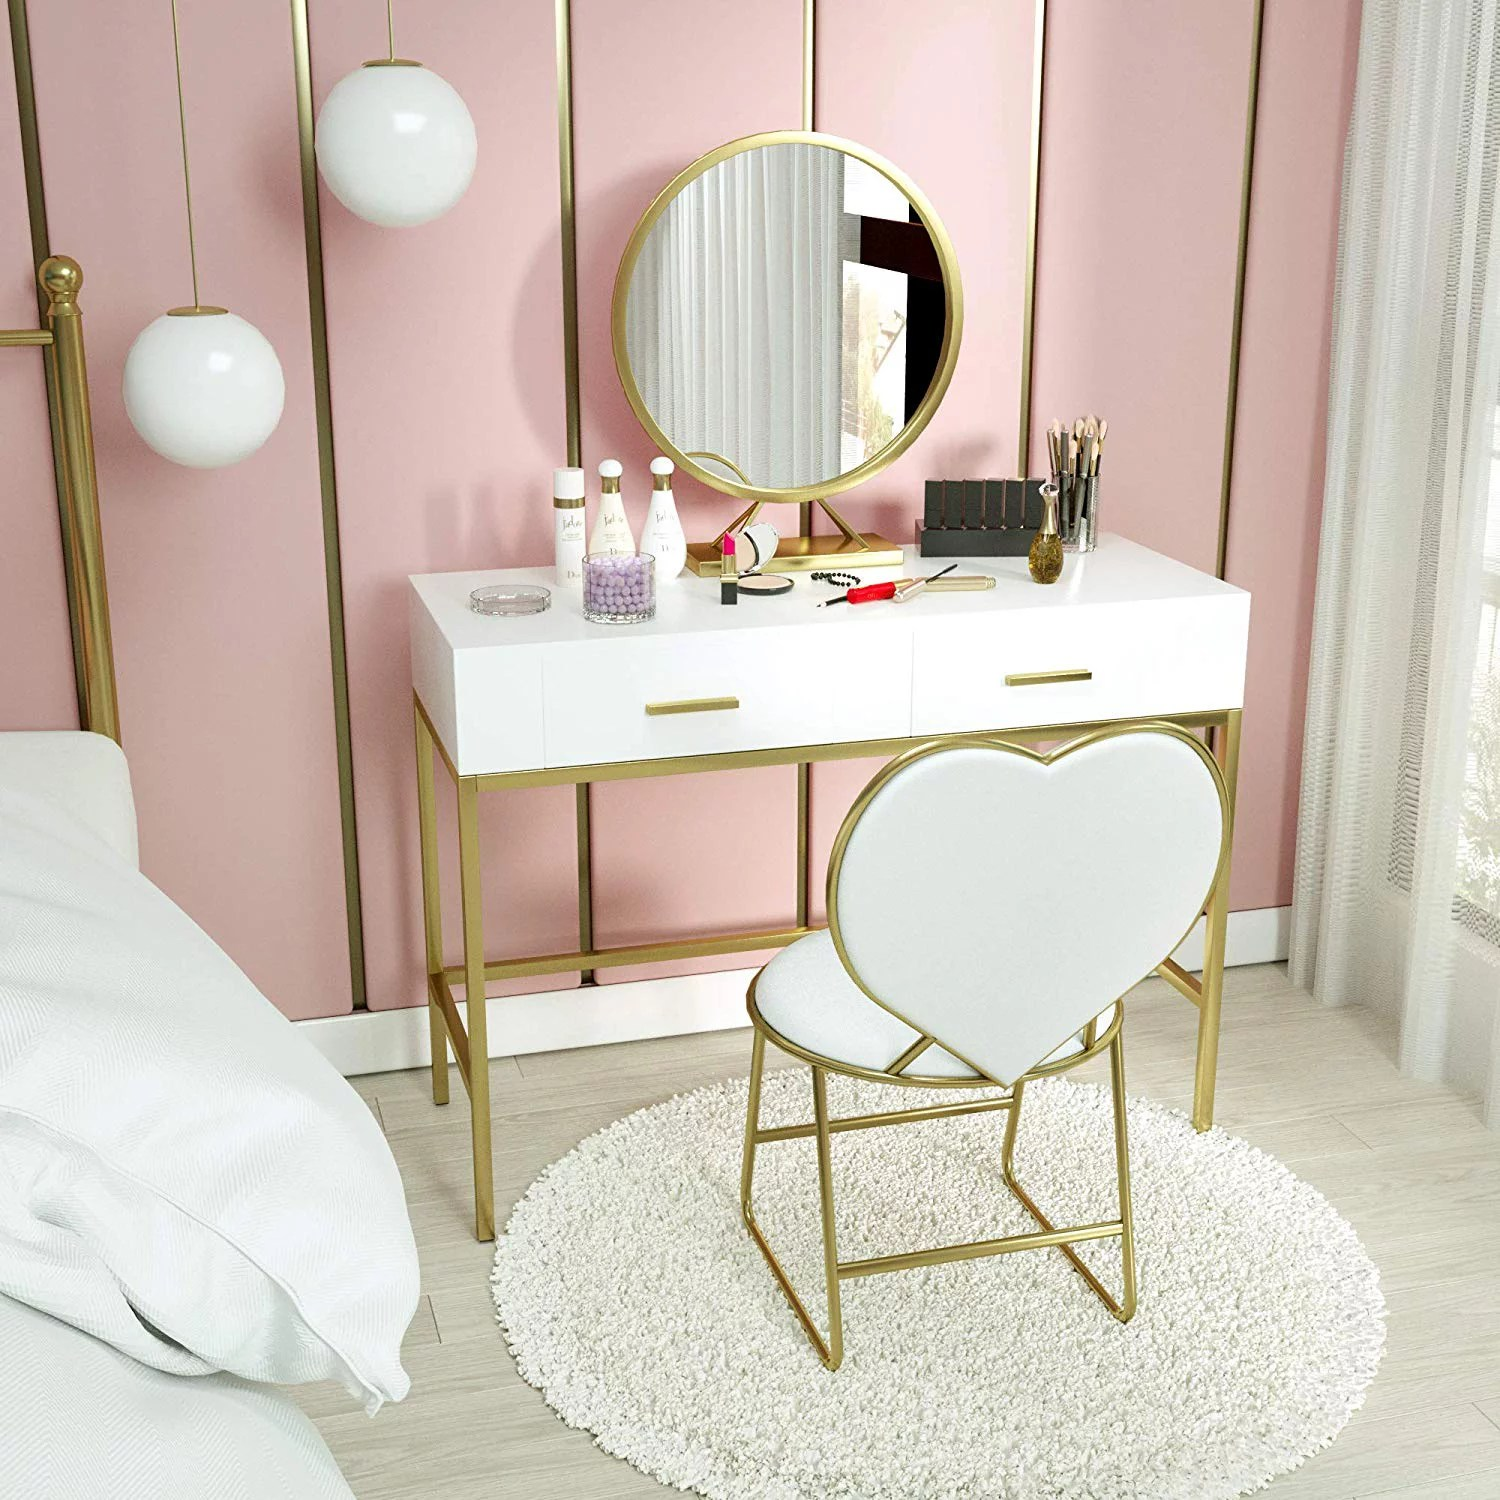 mecor vanity table set with mirror white vanity desk wood makeup vanity with gold metal legs heart shape cushioned stool girls women bedroom furniture